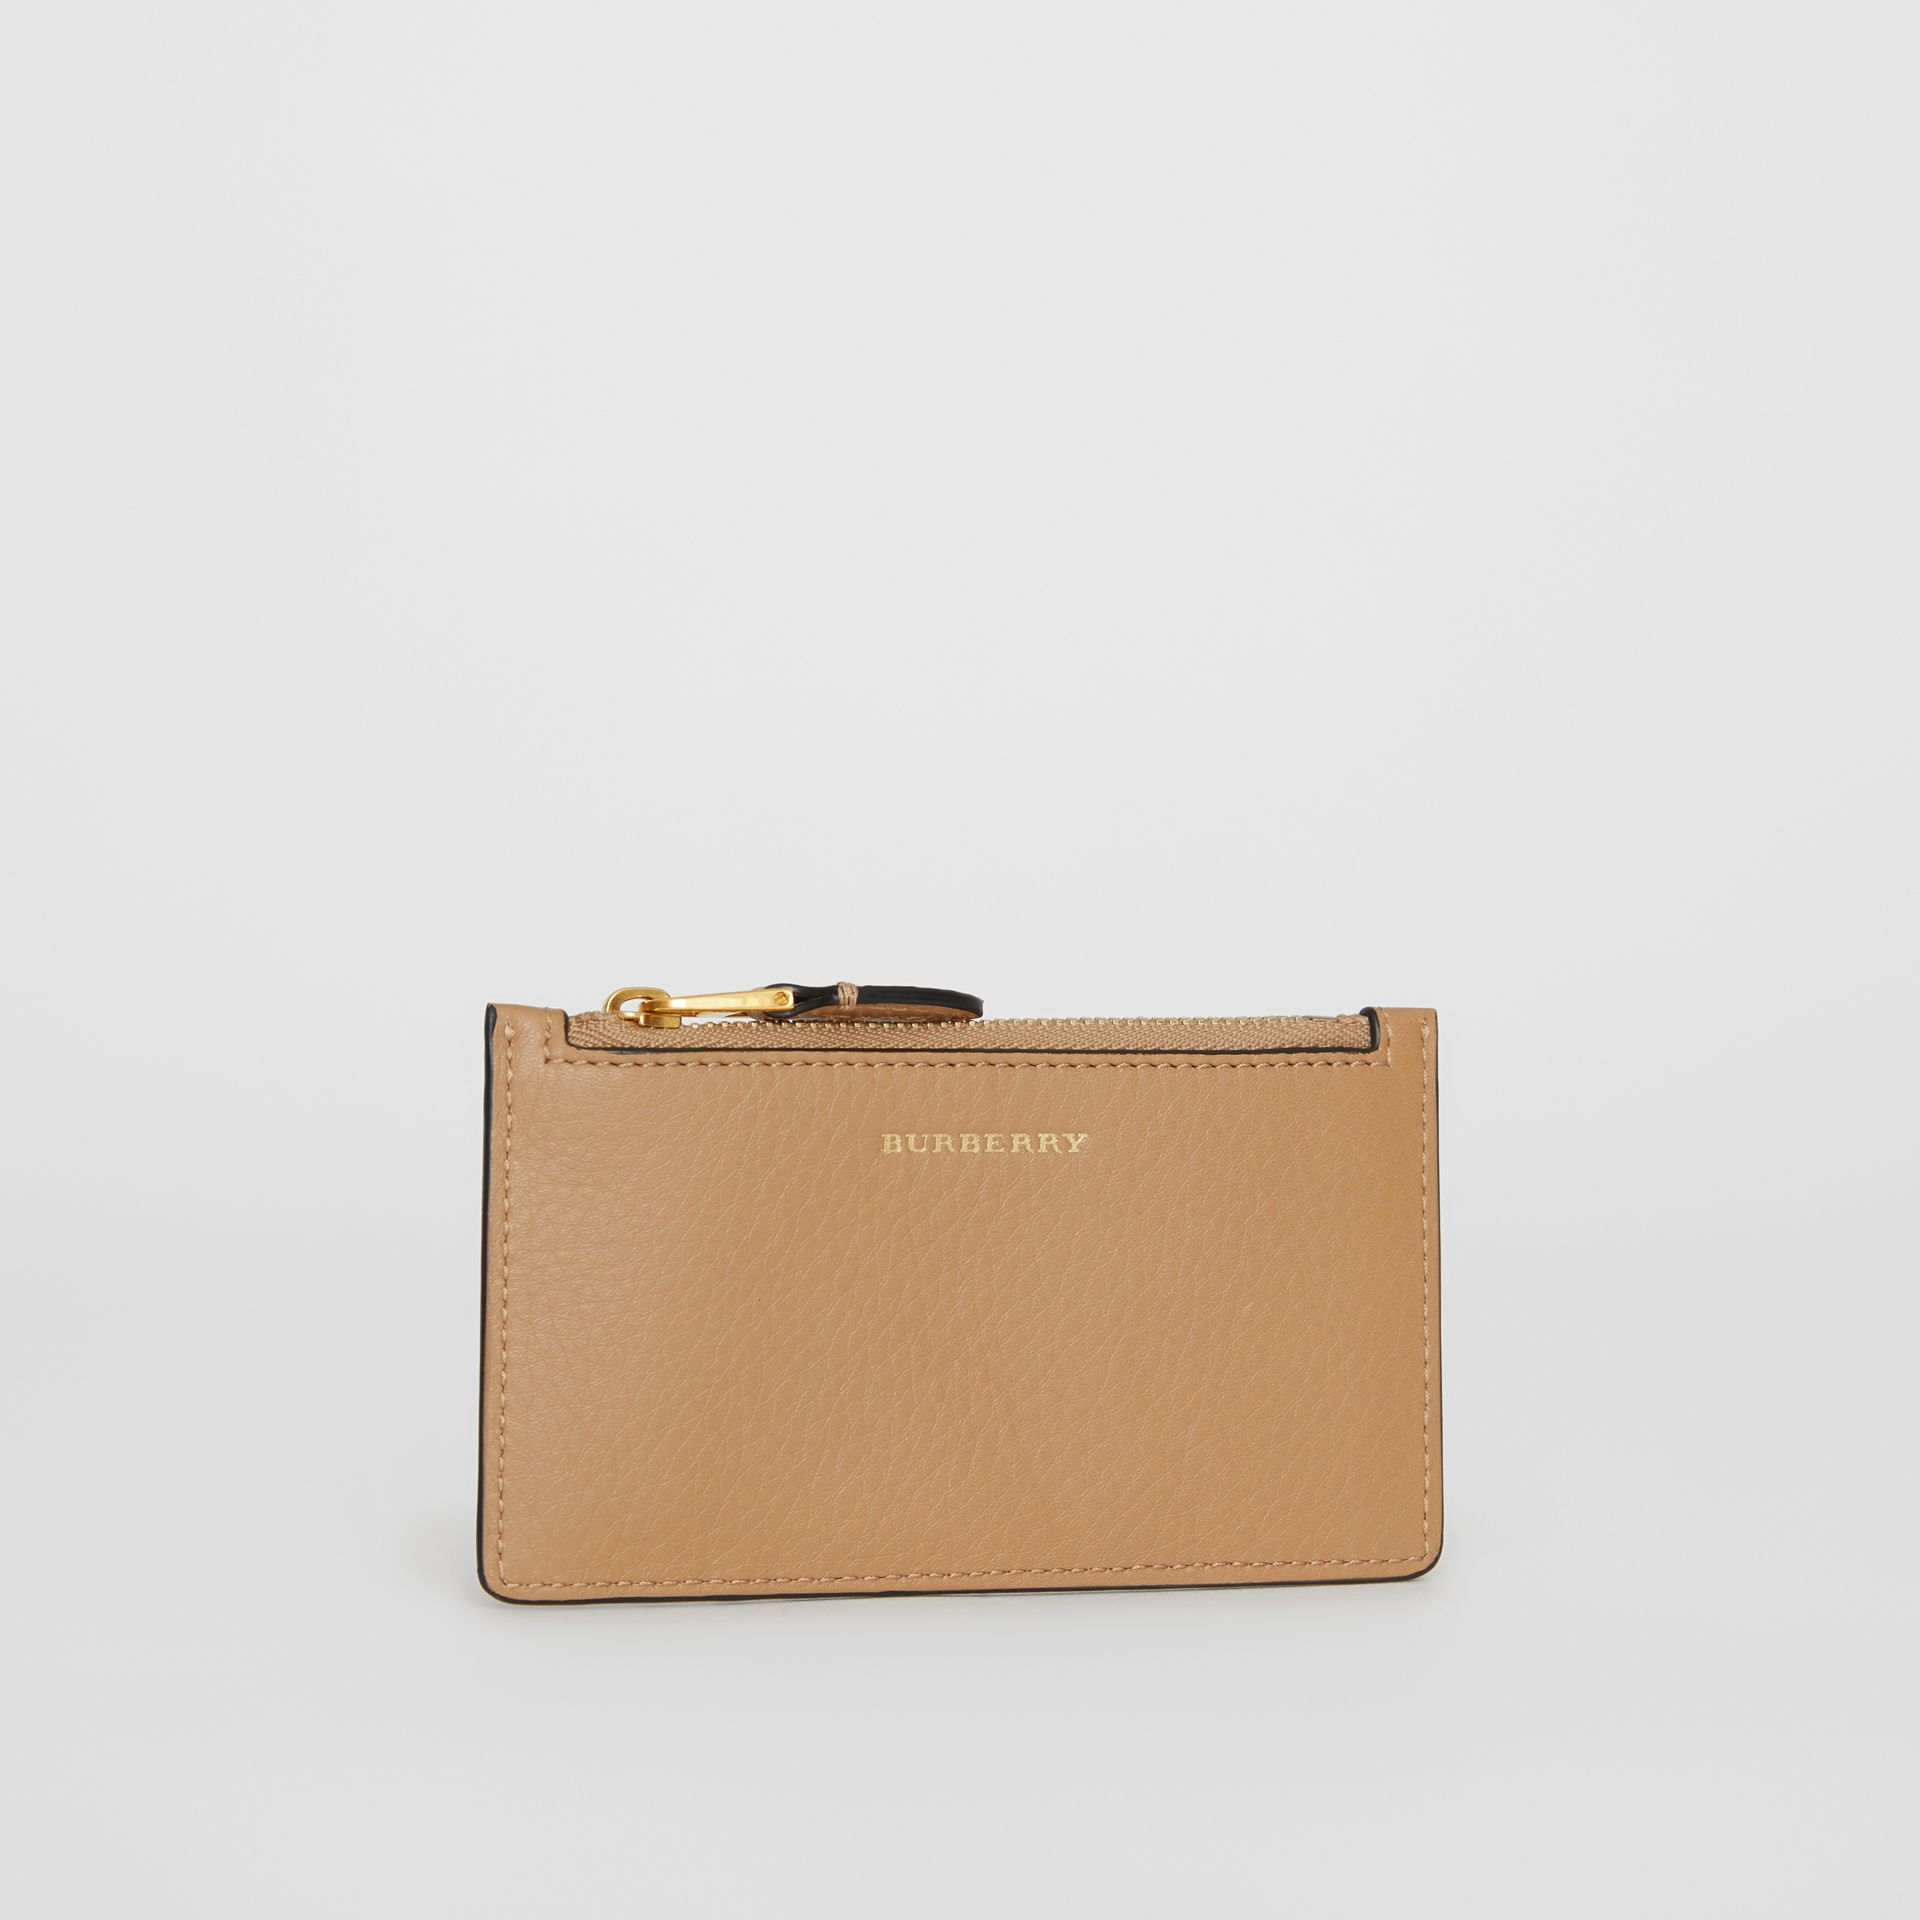 Two-tone Leather Card Case in Light Camel - Women | Burberry - gallery image 4